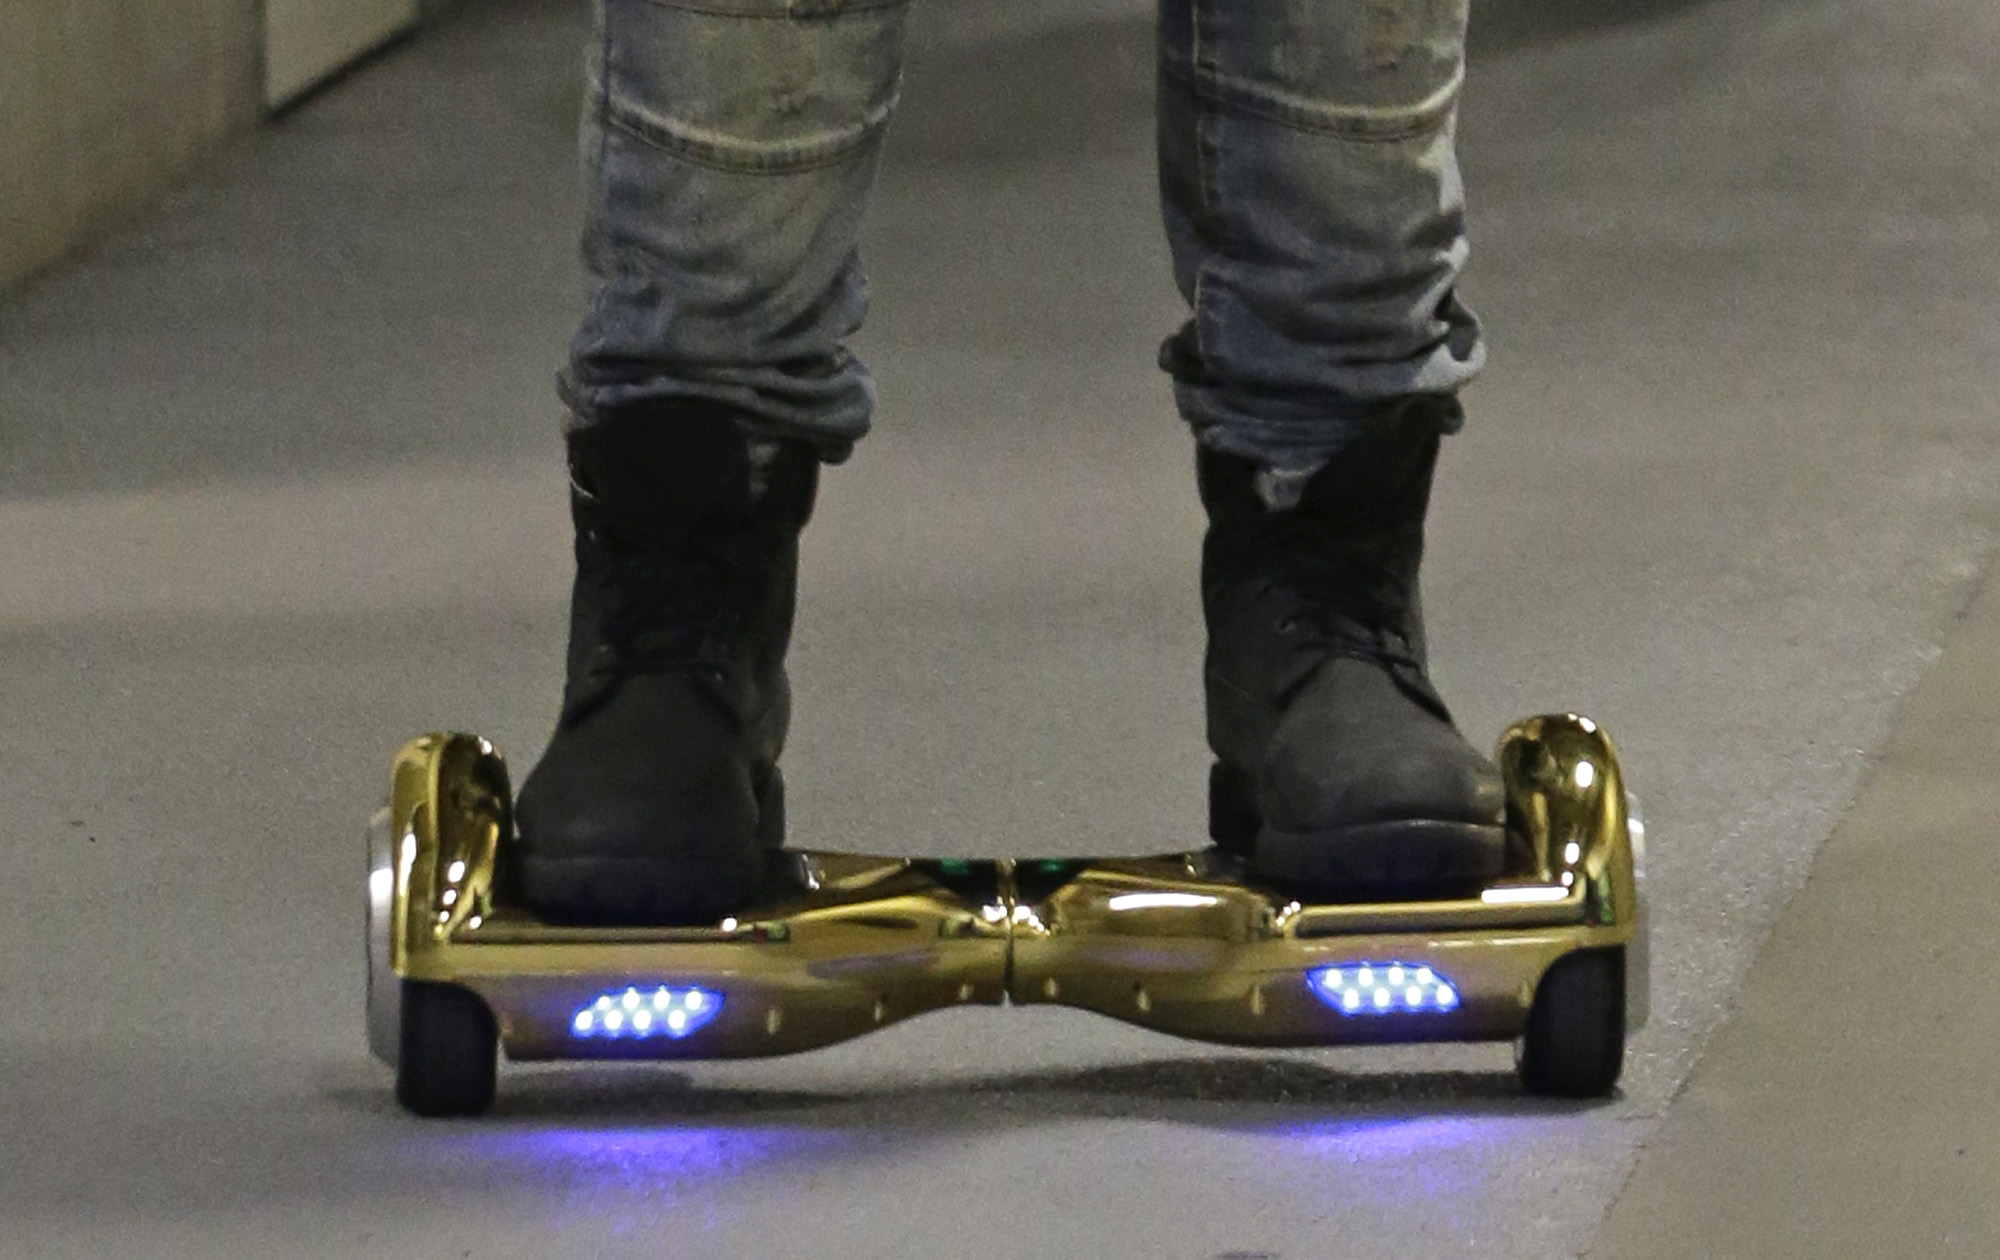 Holiday Must Have Gift Hoverboard Cause Safety Concerns